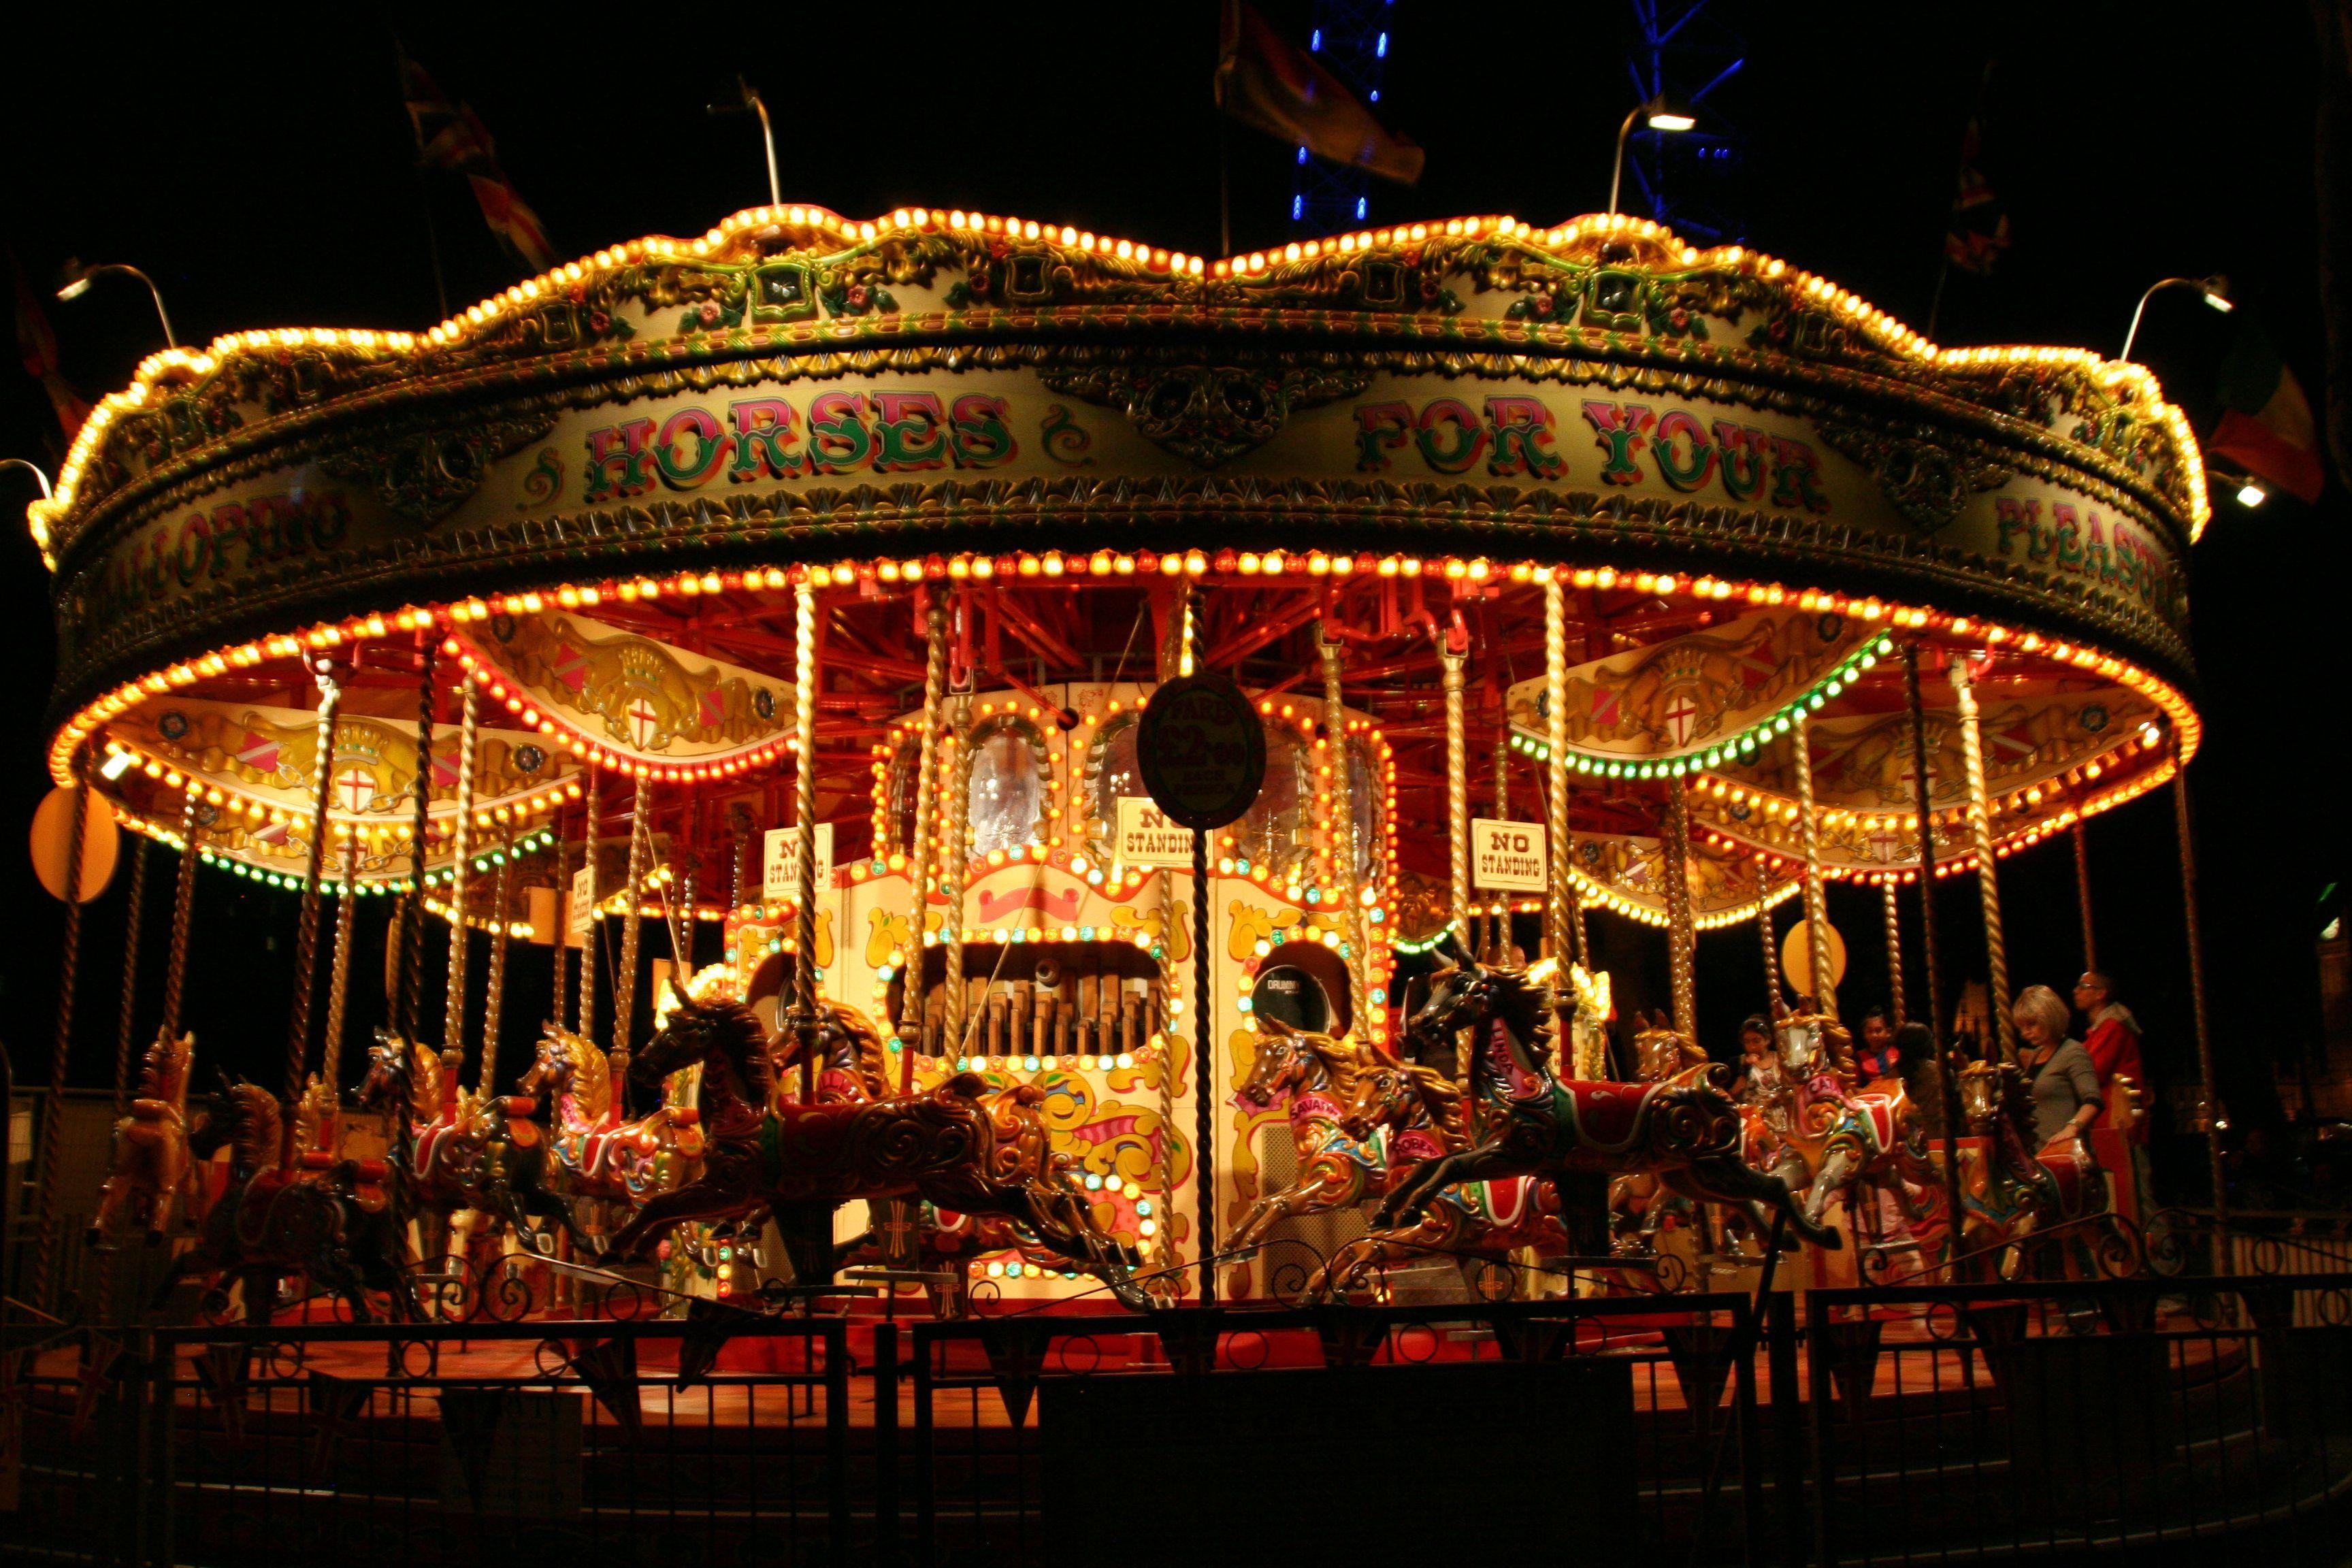 Merry go round Wallpapers 2016 3456x2304